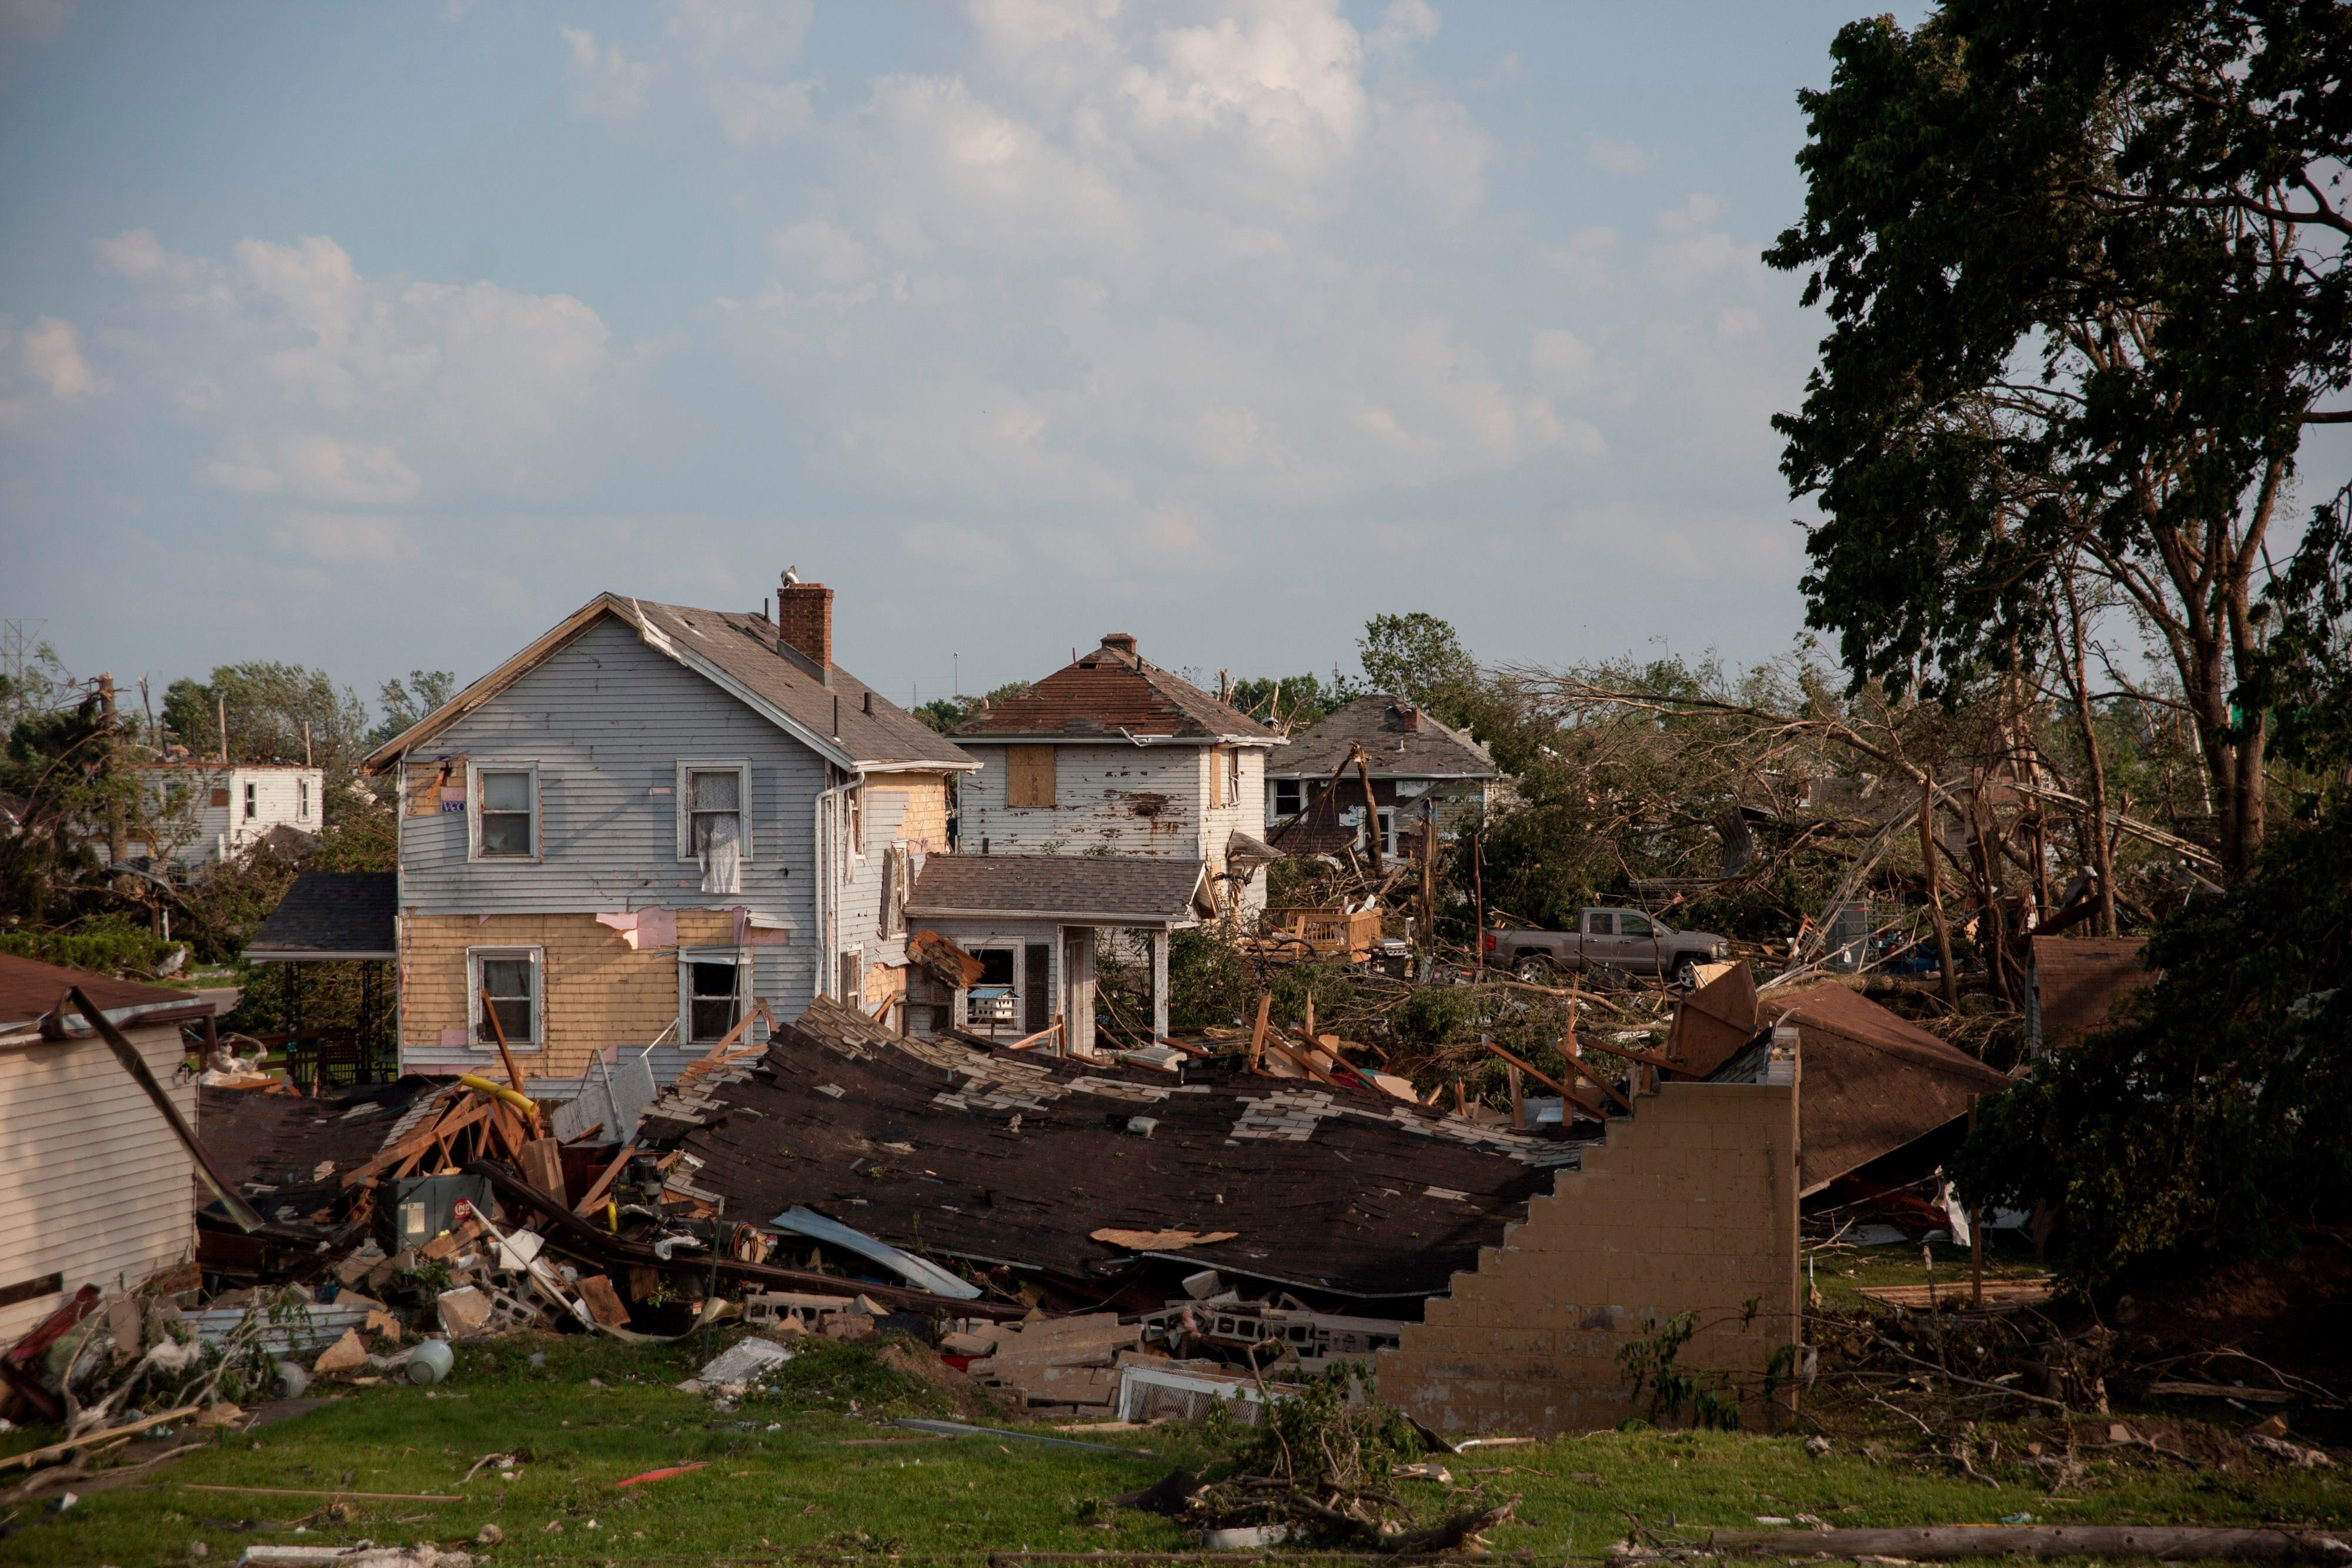 After the tornado storm damage in the US in pictures